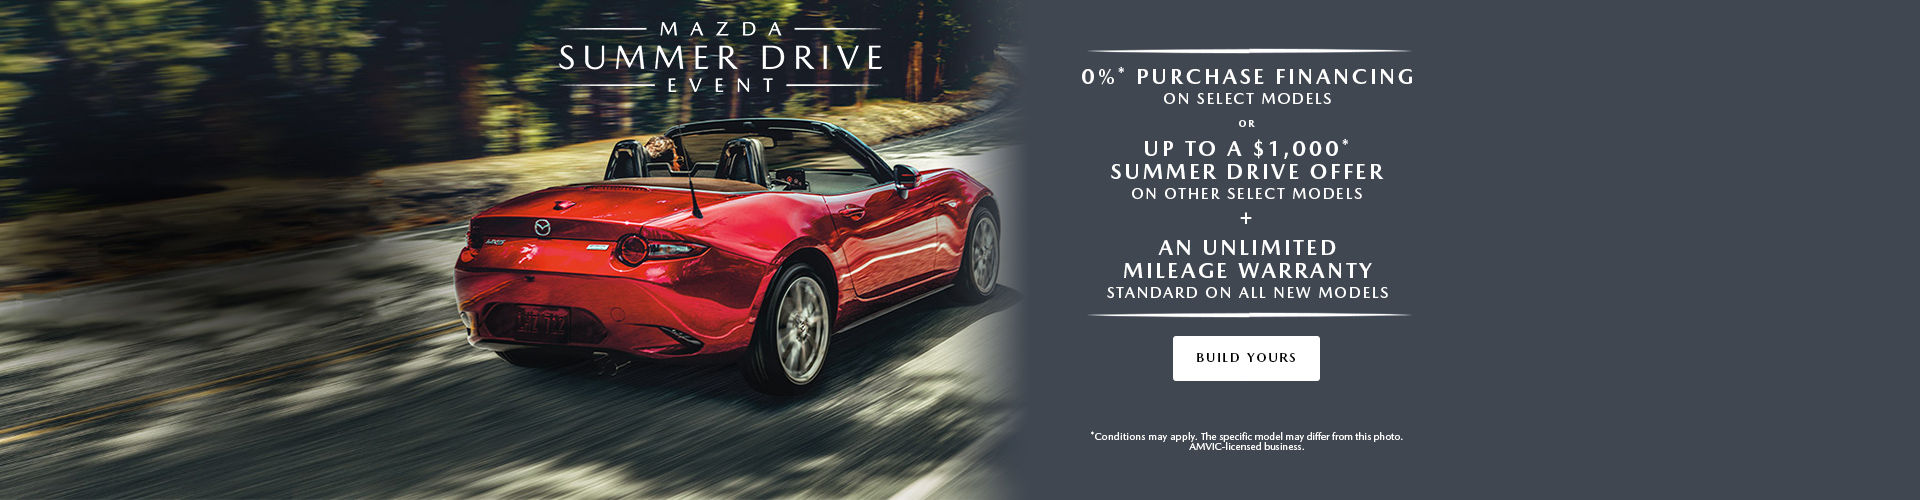 The Summer Drive Event - Header